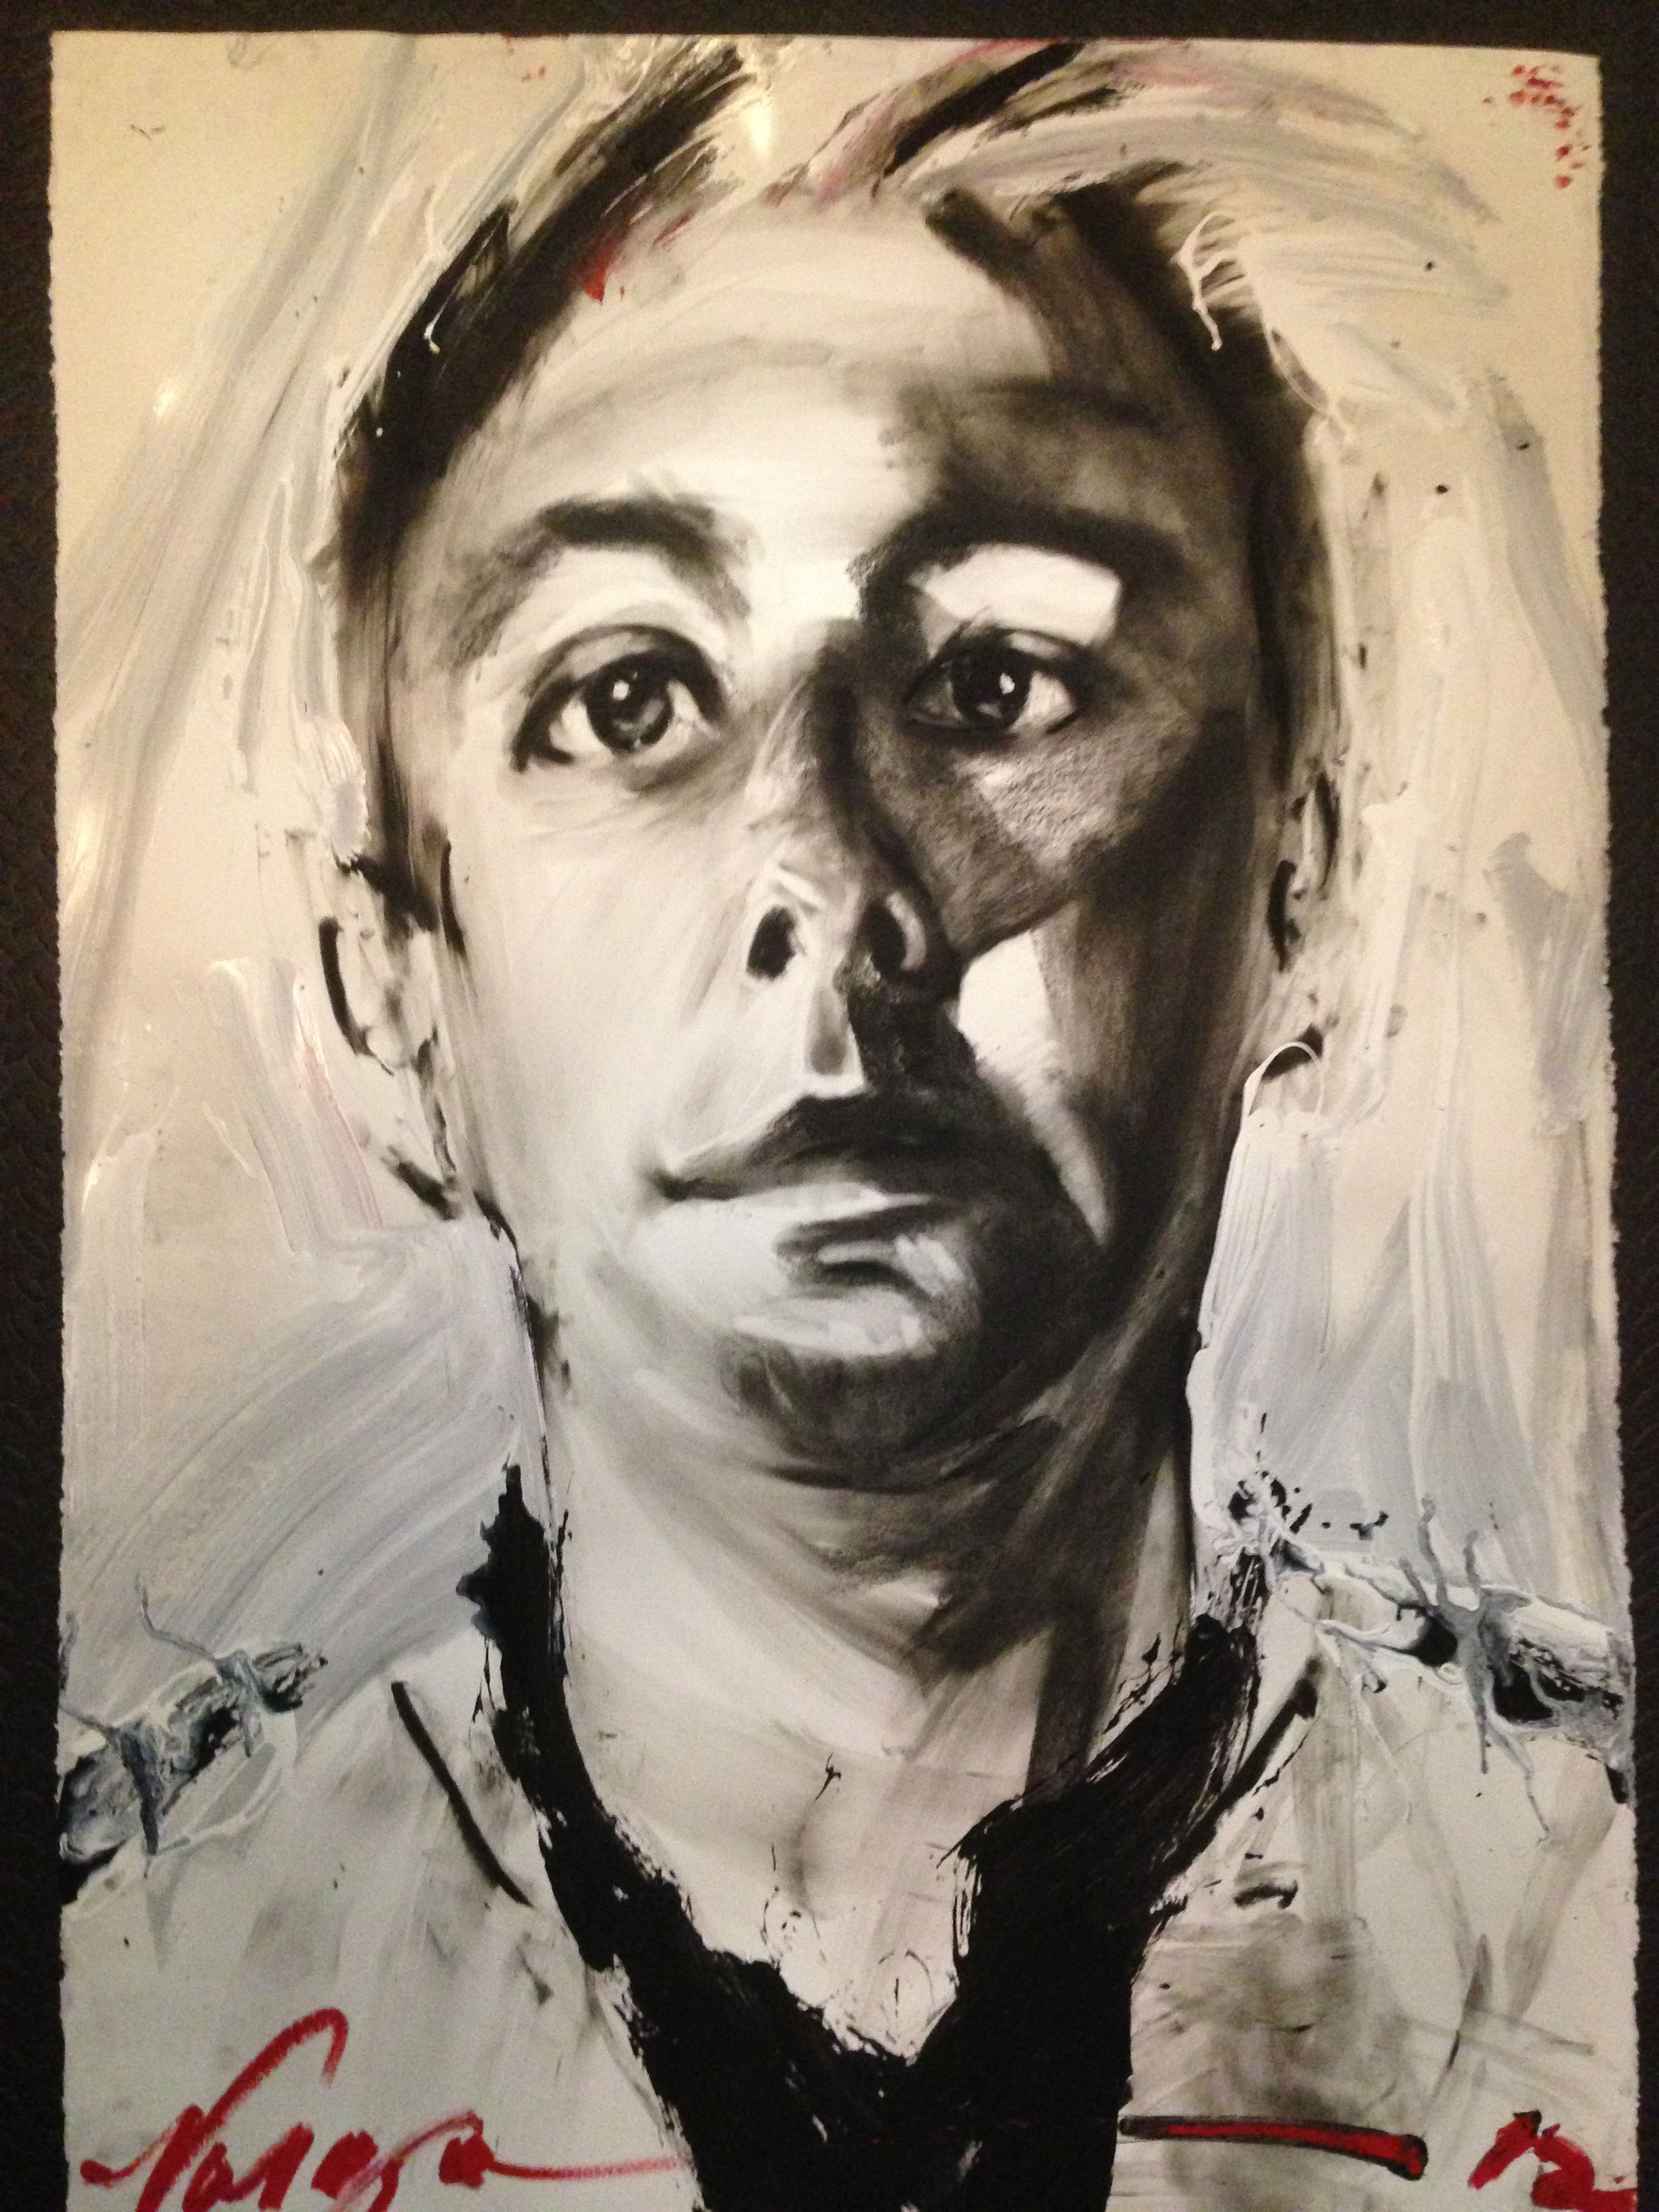 portrait of me by Robert Vargas at his live painting event during this Monty's DTLA ArtWalk.